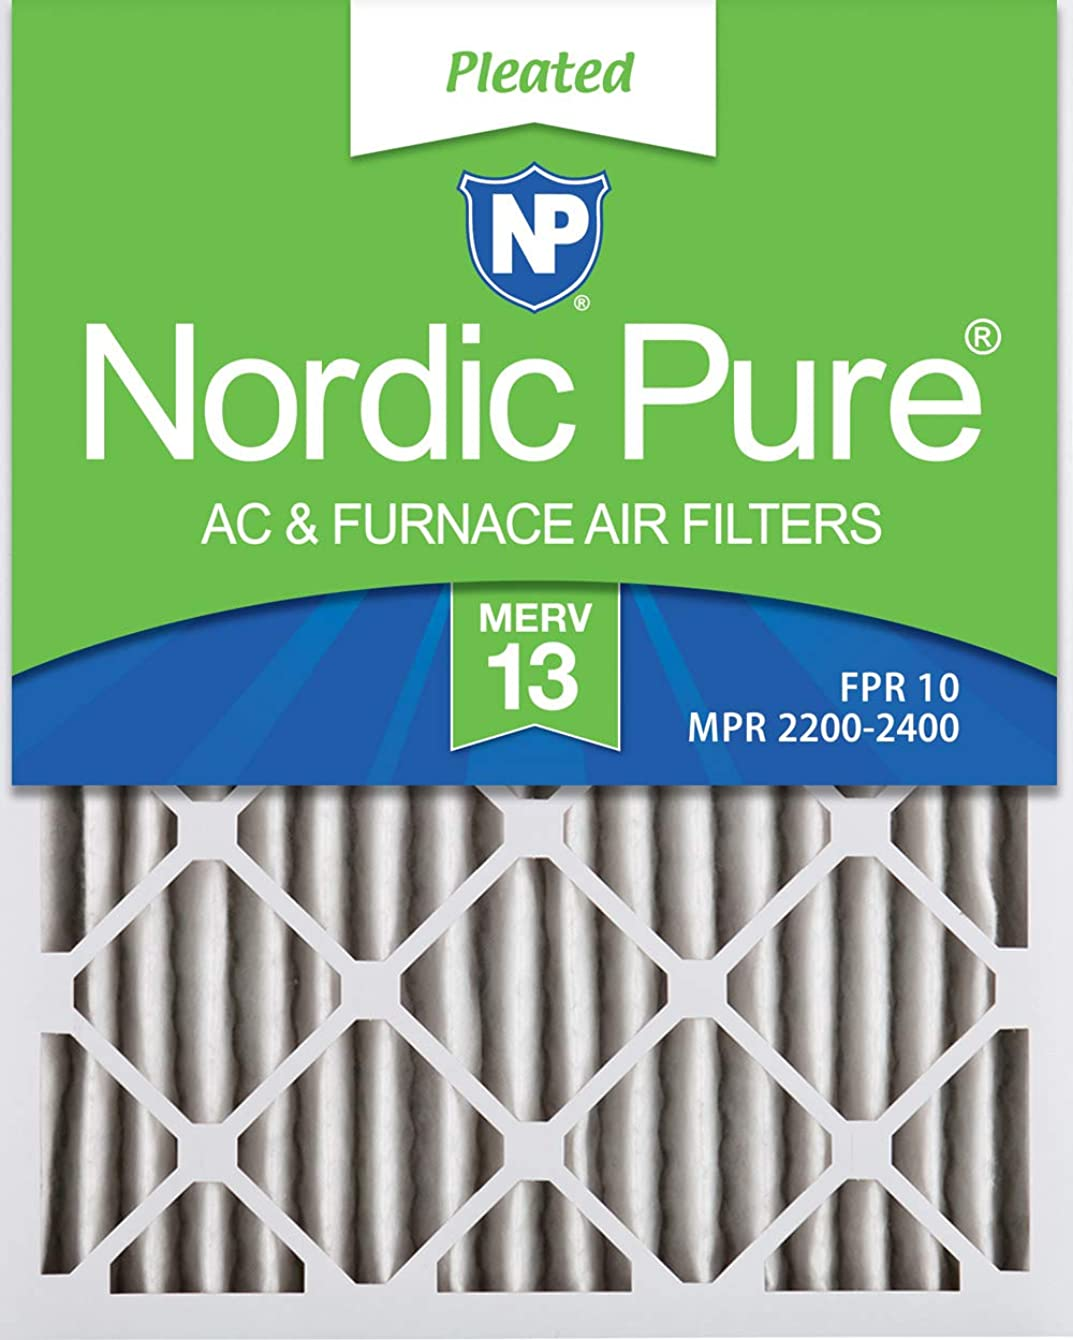 Nordic Pure 20x24x2 MERV 13 Pleated AC Furnace Air Filters, 2-Inch, 3 Pack